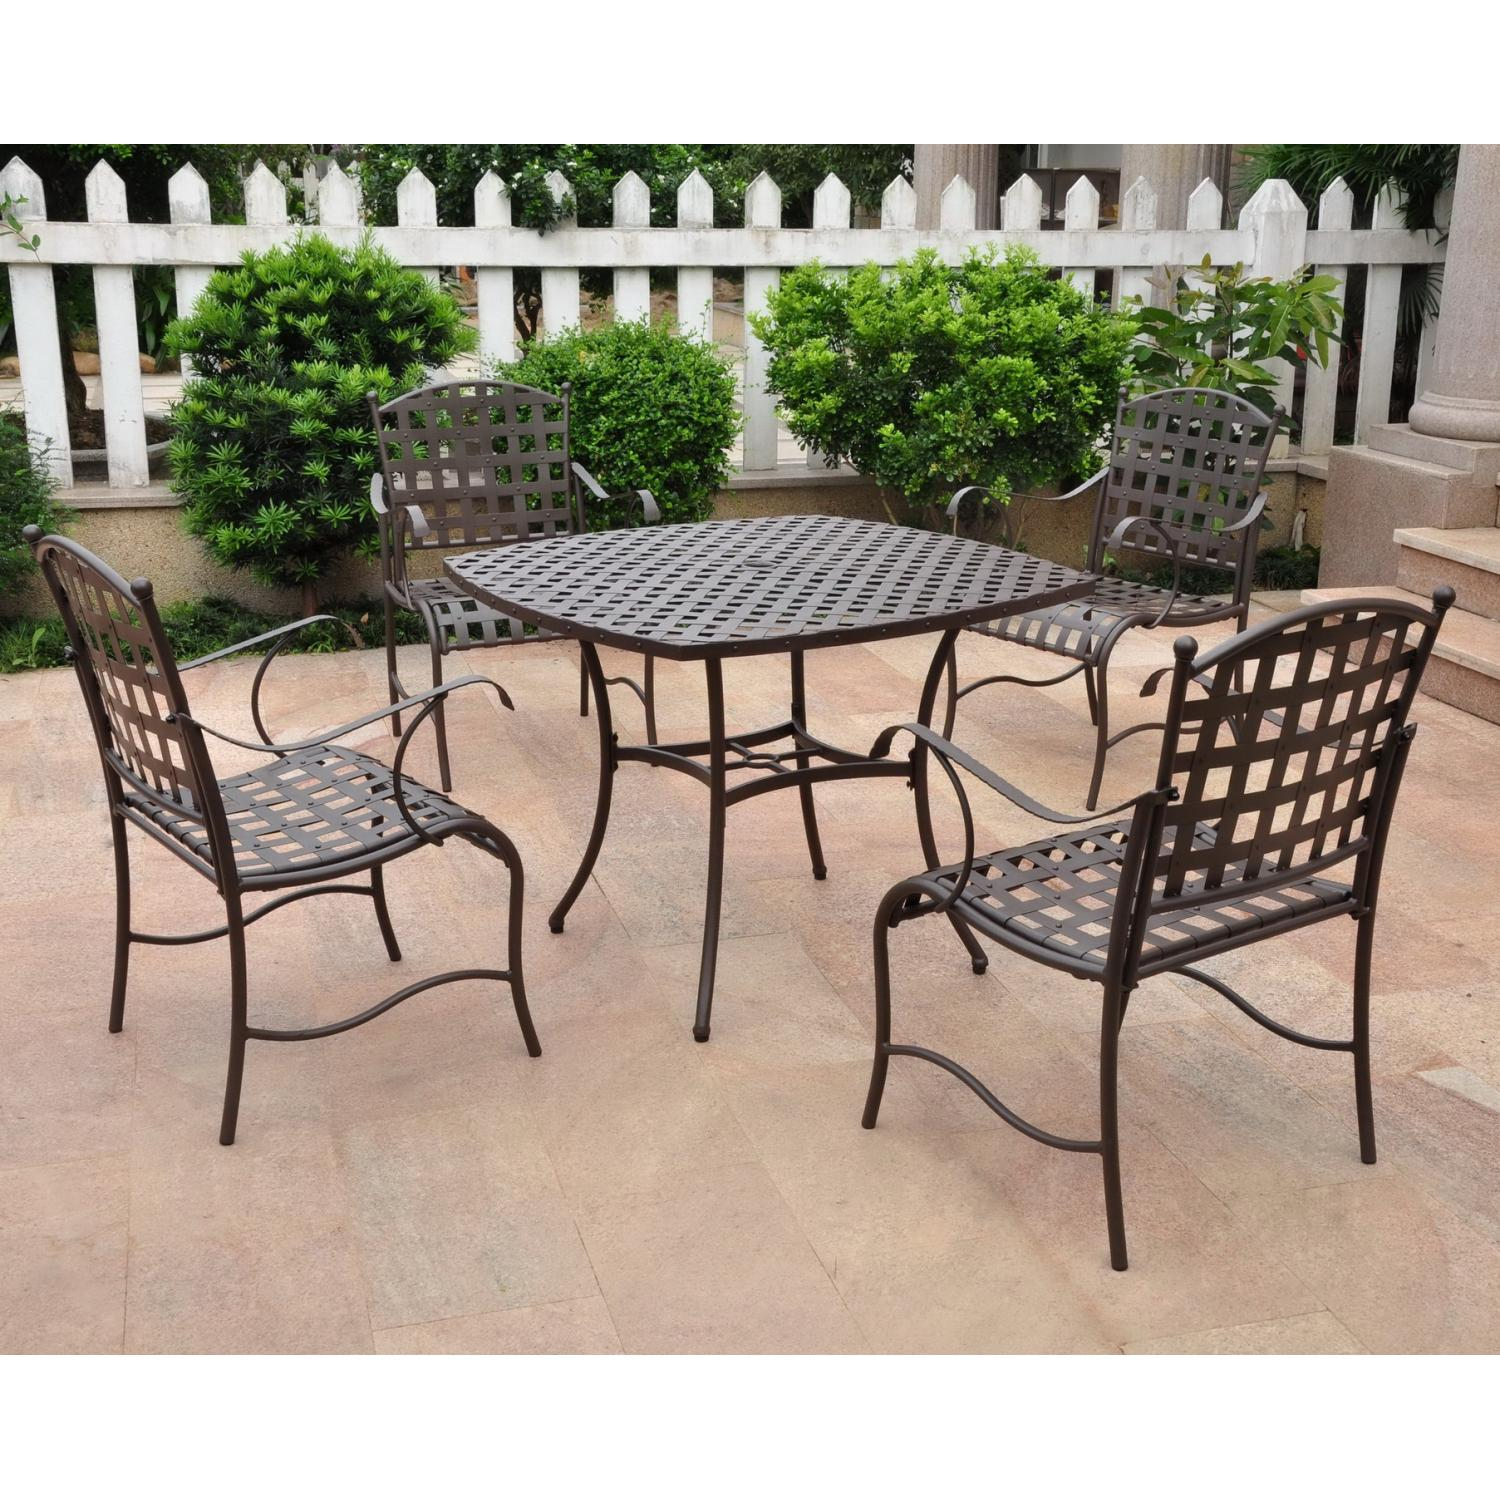 Dining Room Furniture Table Chair Wrought Iron Tables Chairs